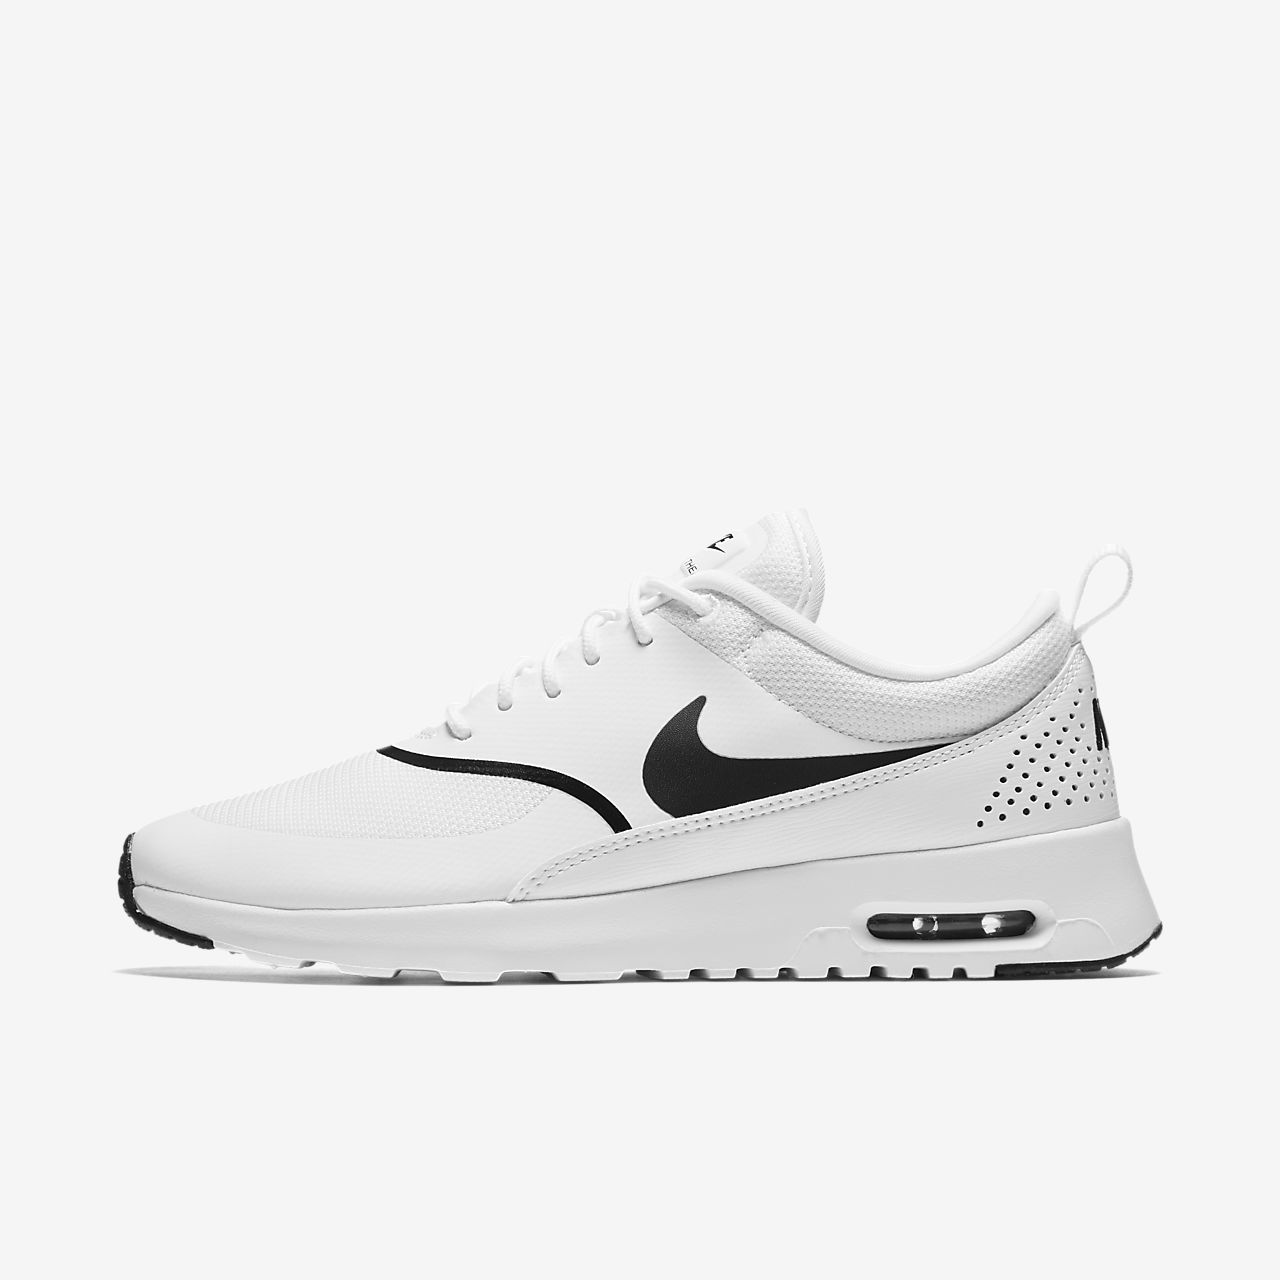 Details about Nike Air Max Thea Women Women's Shoes Sneakers Trainers Black New 599409 028 show original title